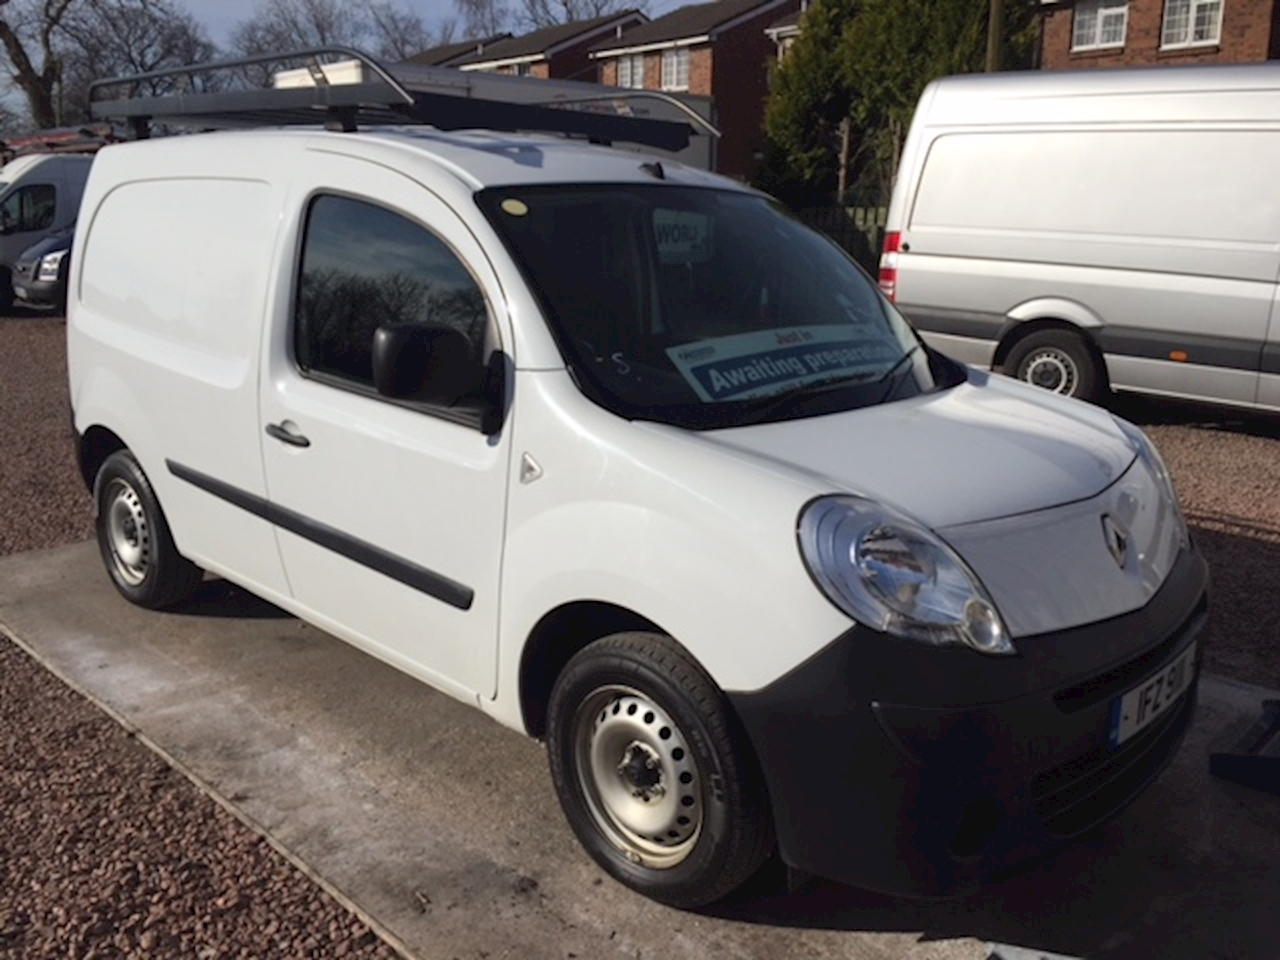 Renault Kangoo Ml20 Dci - just in and awaiting prep 1.5 3dr Panel Van Manual Diesel